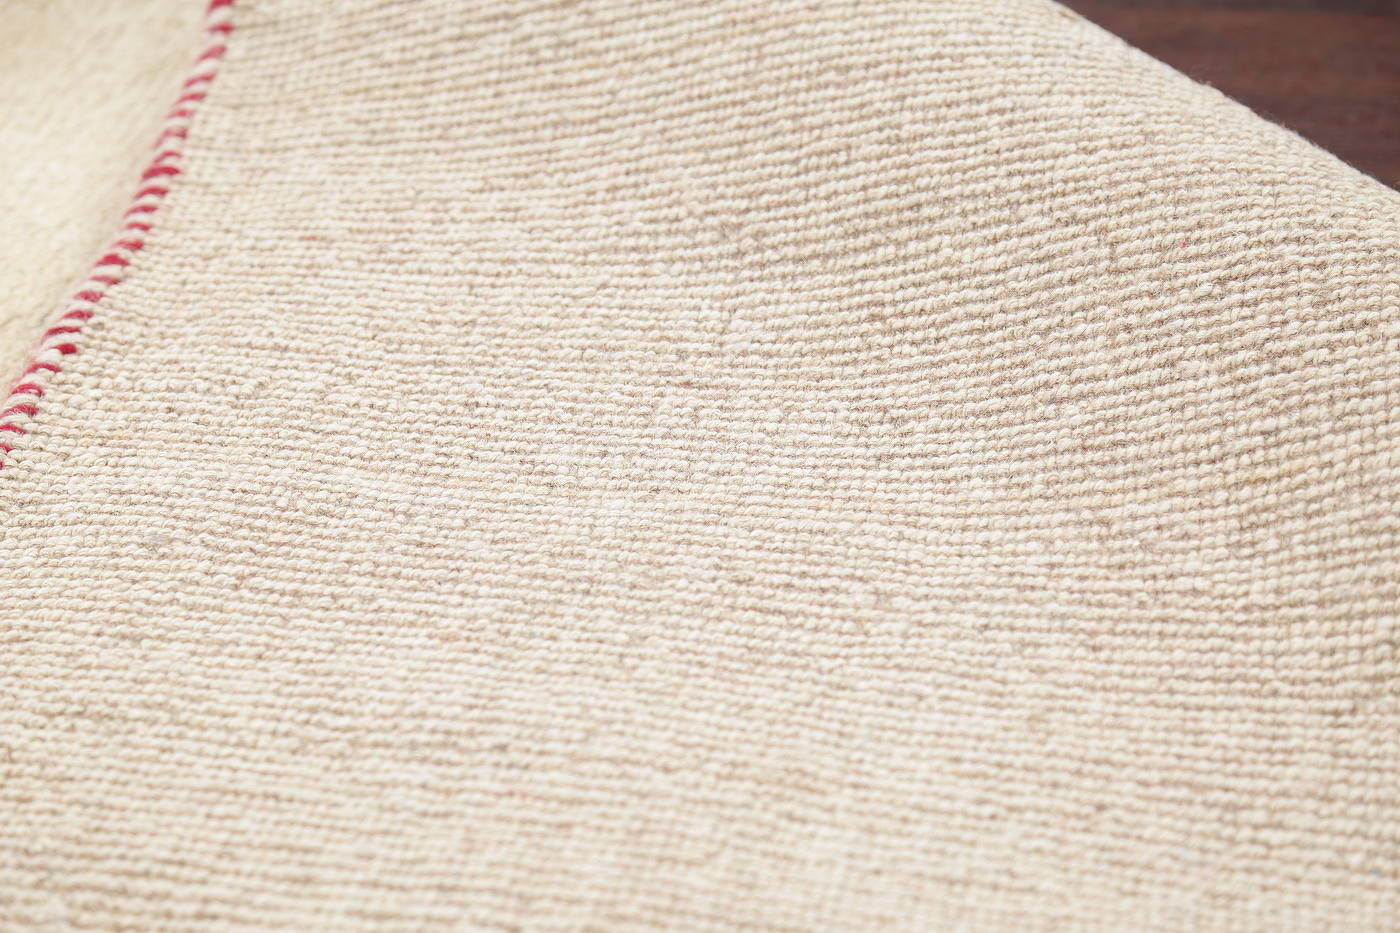 Hand-Knotted Solid Ivory Gabbeh Shiraz Persian Runner Rug 3x6 image 13